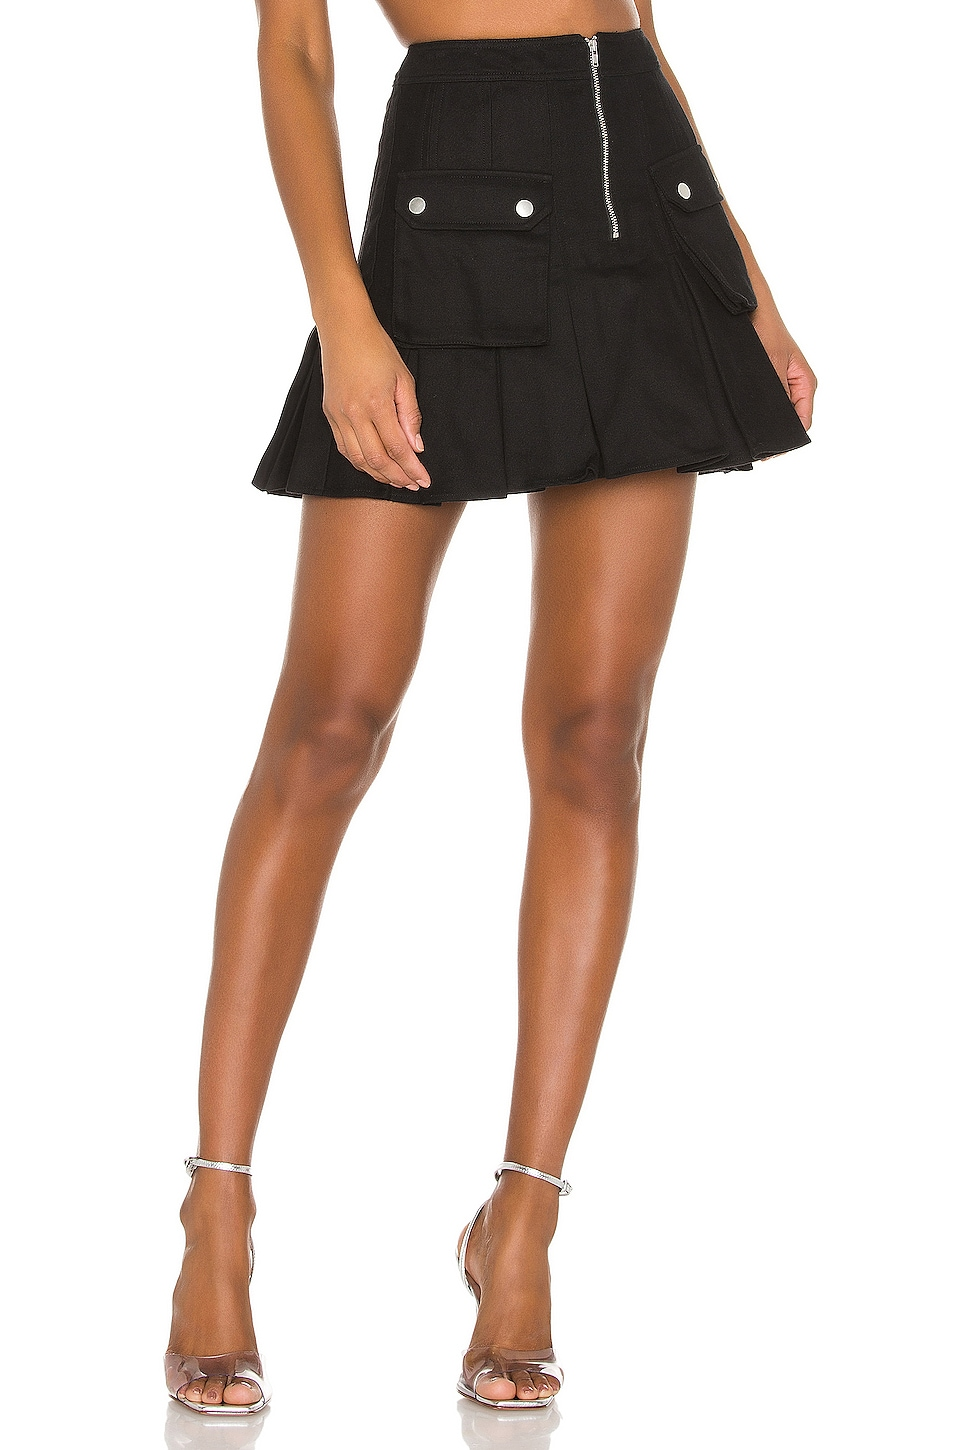 h:ours Dax Skirt in Black